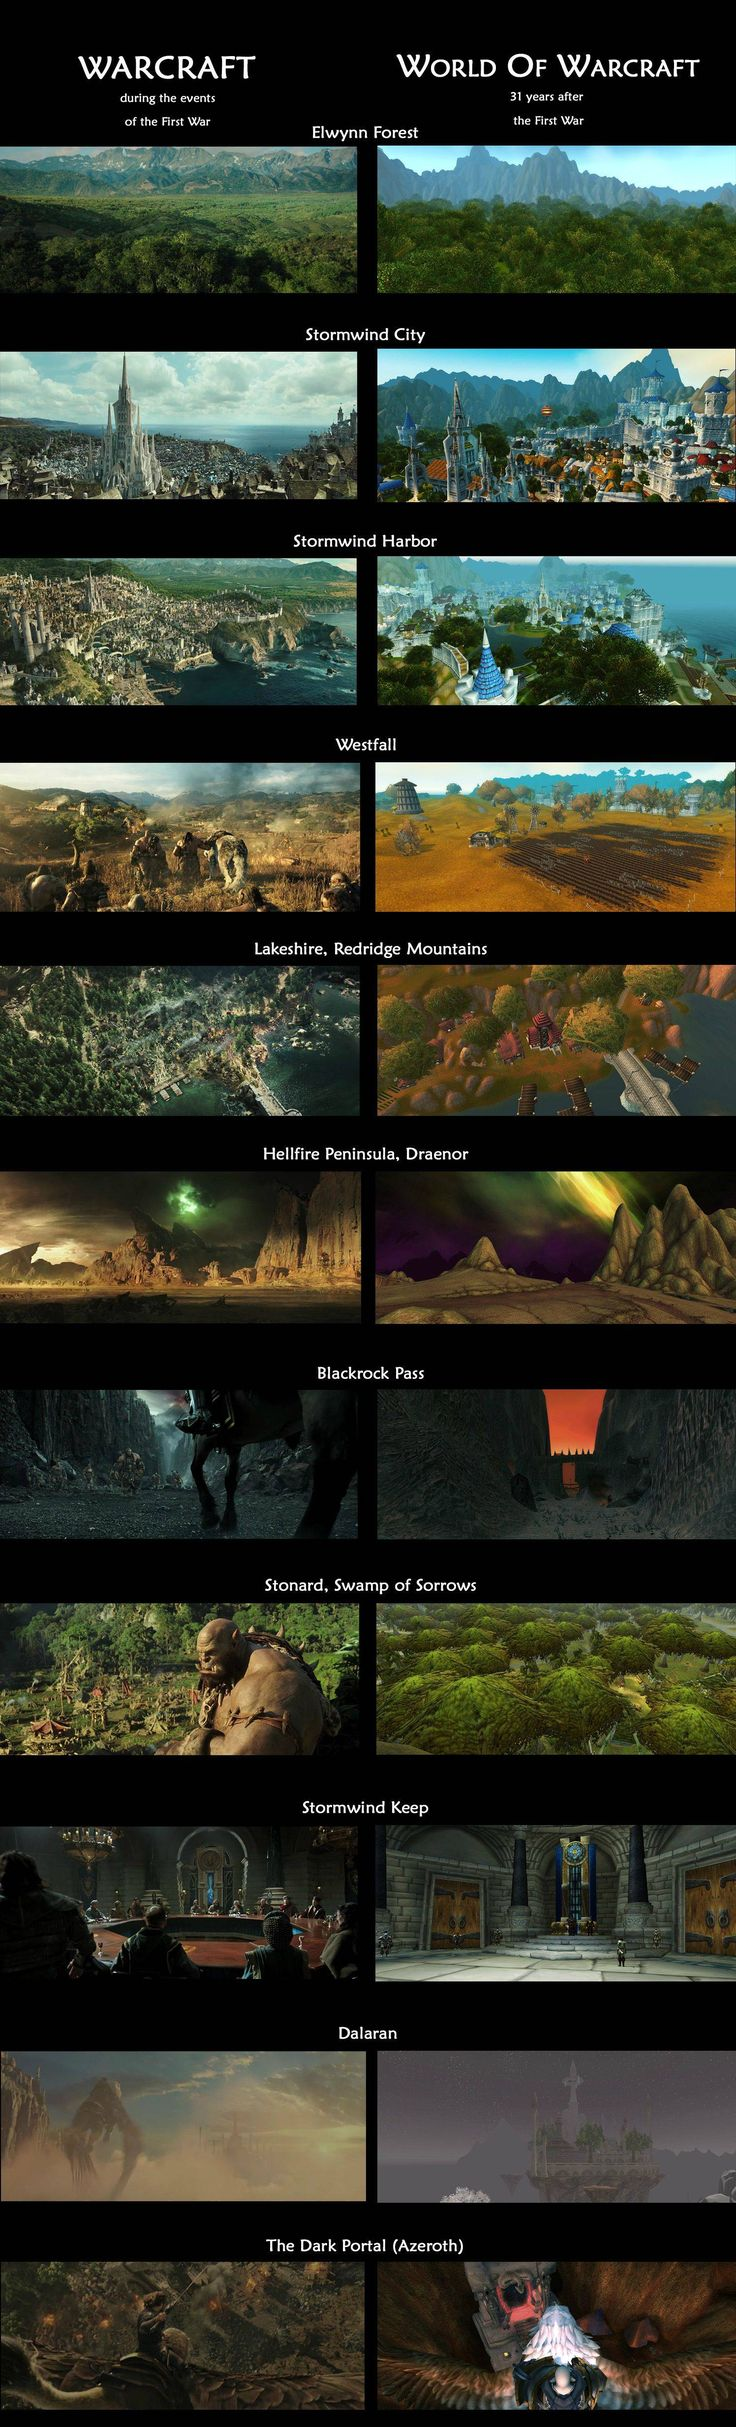 A comparison of (recognizable) shots from Warcraft (2016) and in-game screenshots from World of Warcraft.